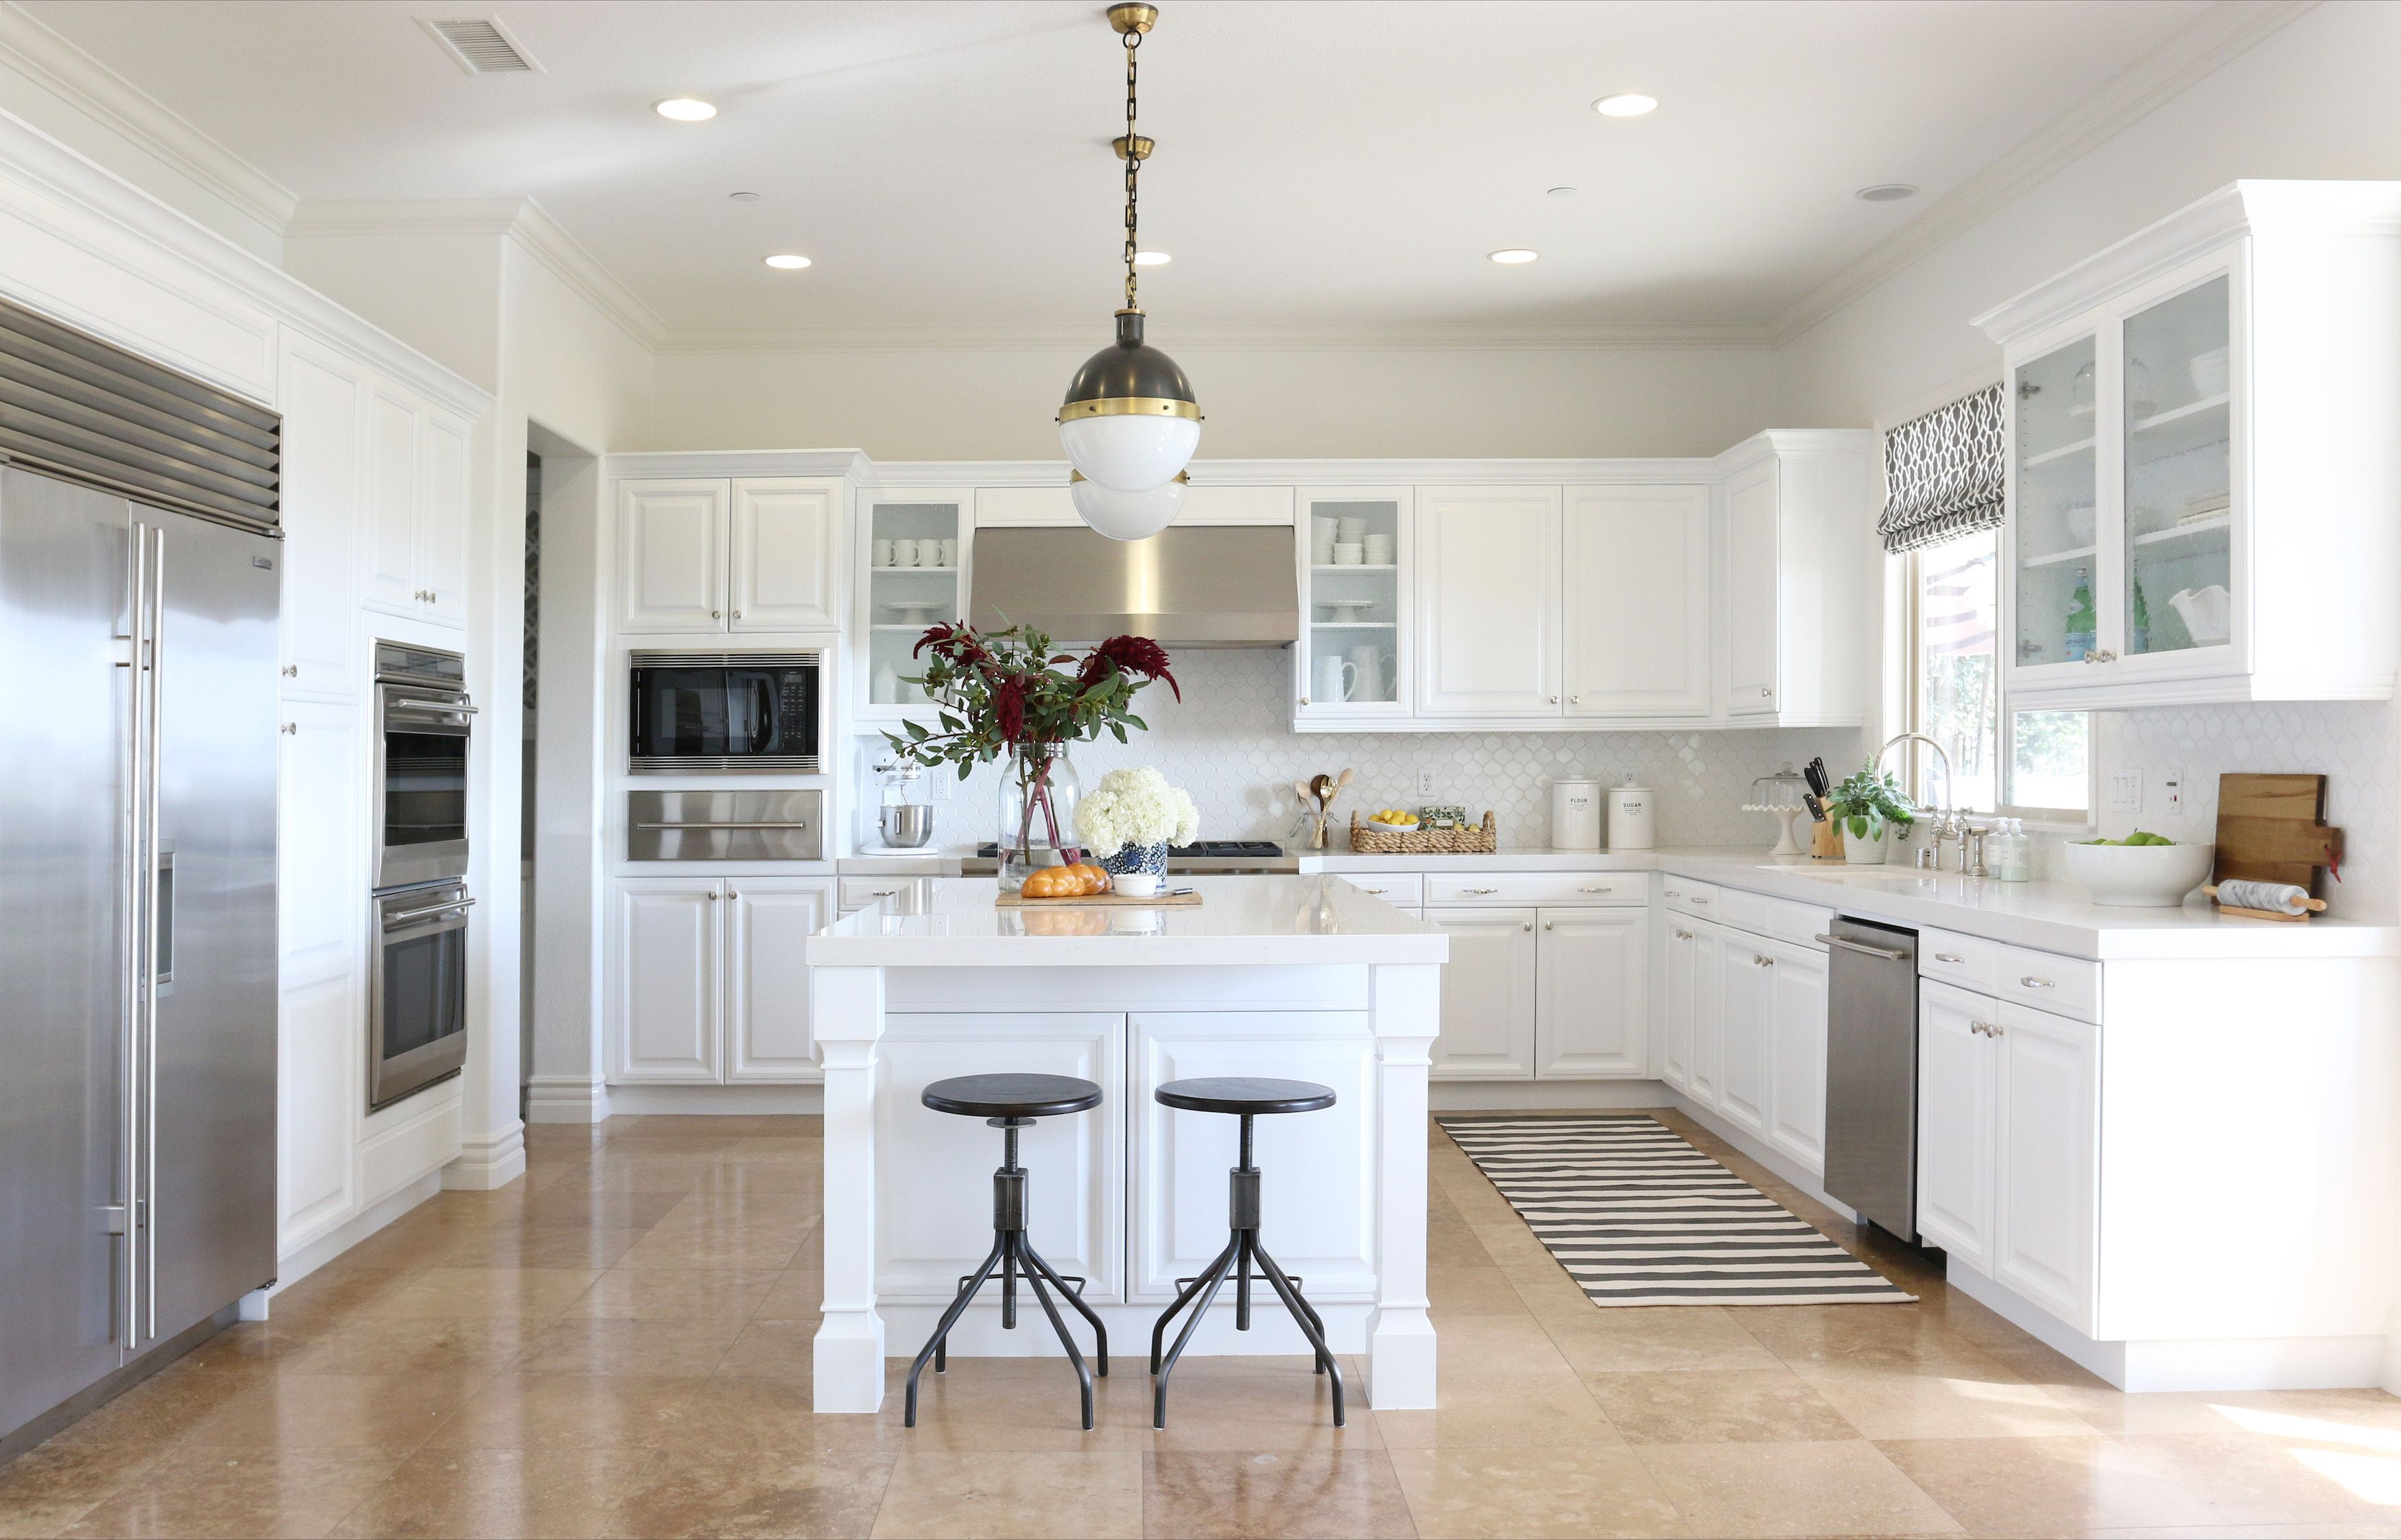 14 Times White Kitchen Cabinets Transformed A Space | Pinterest ...